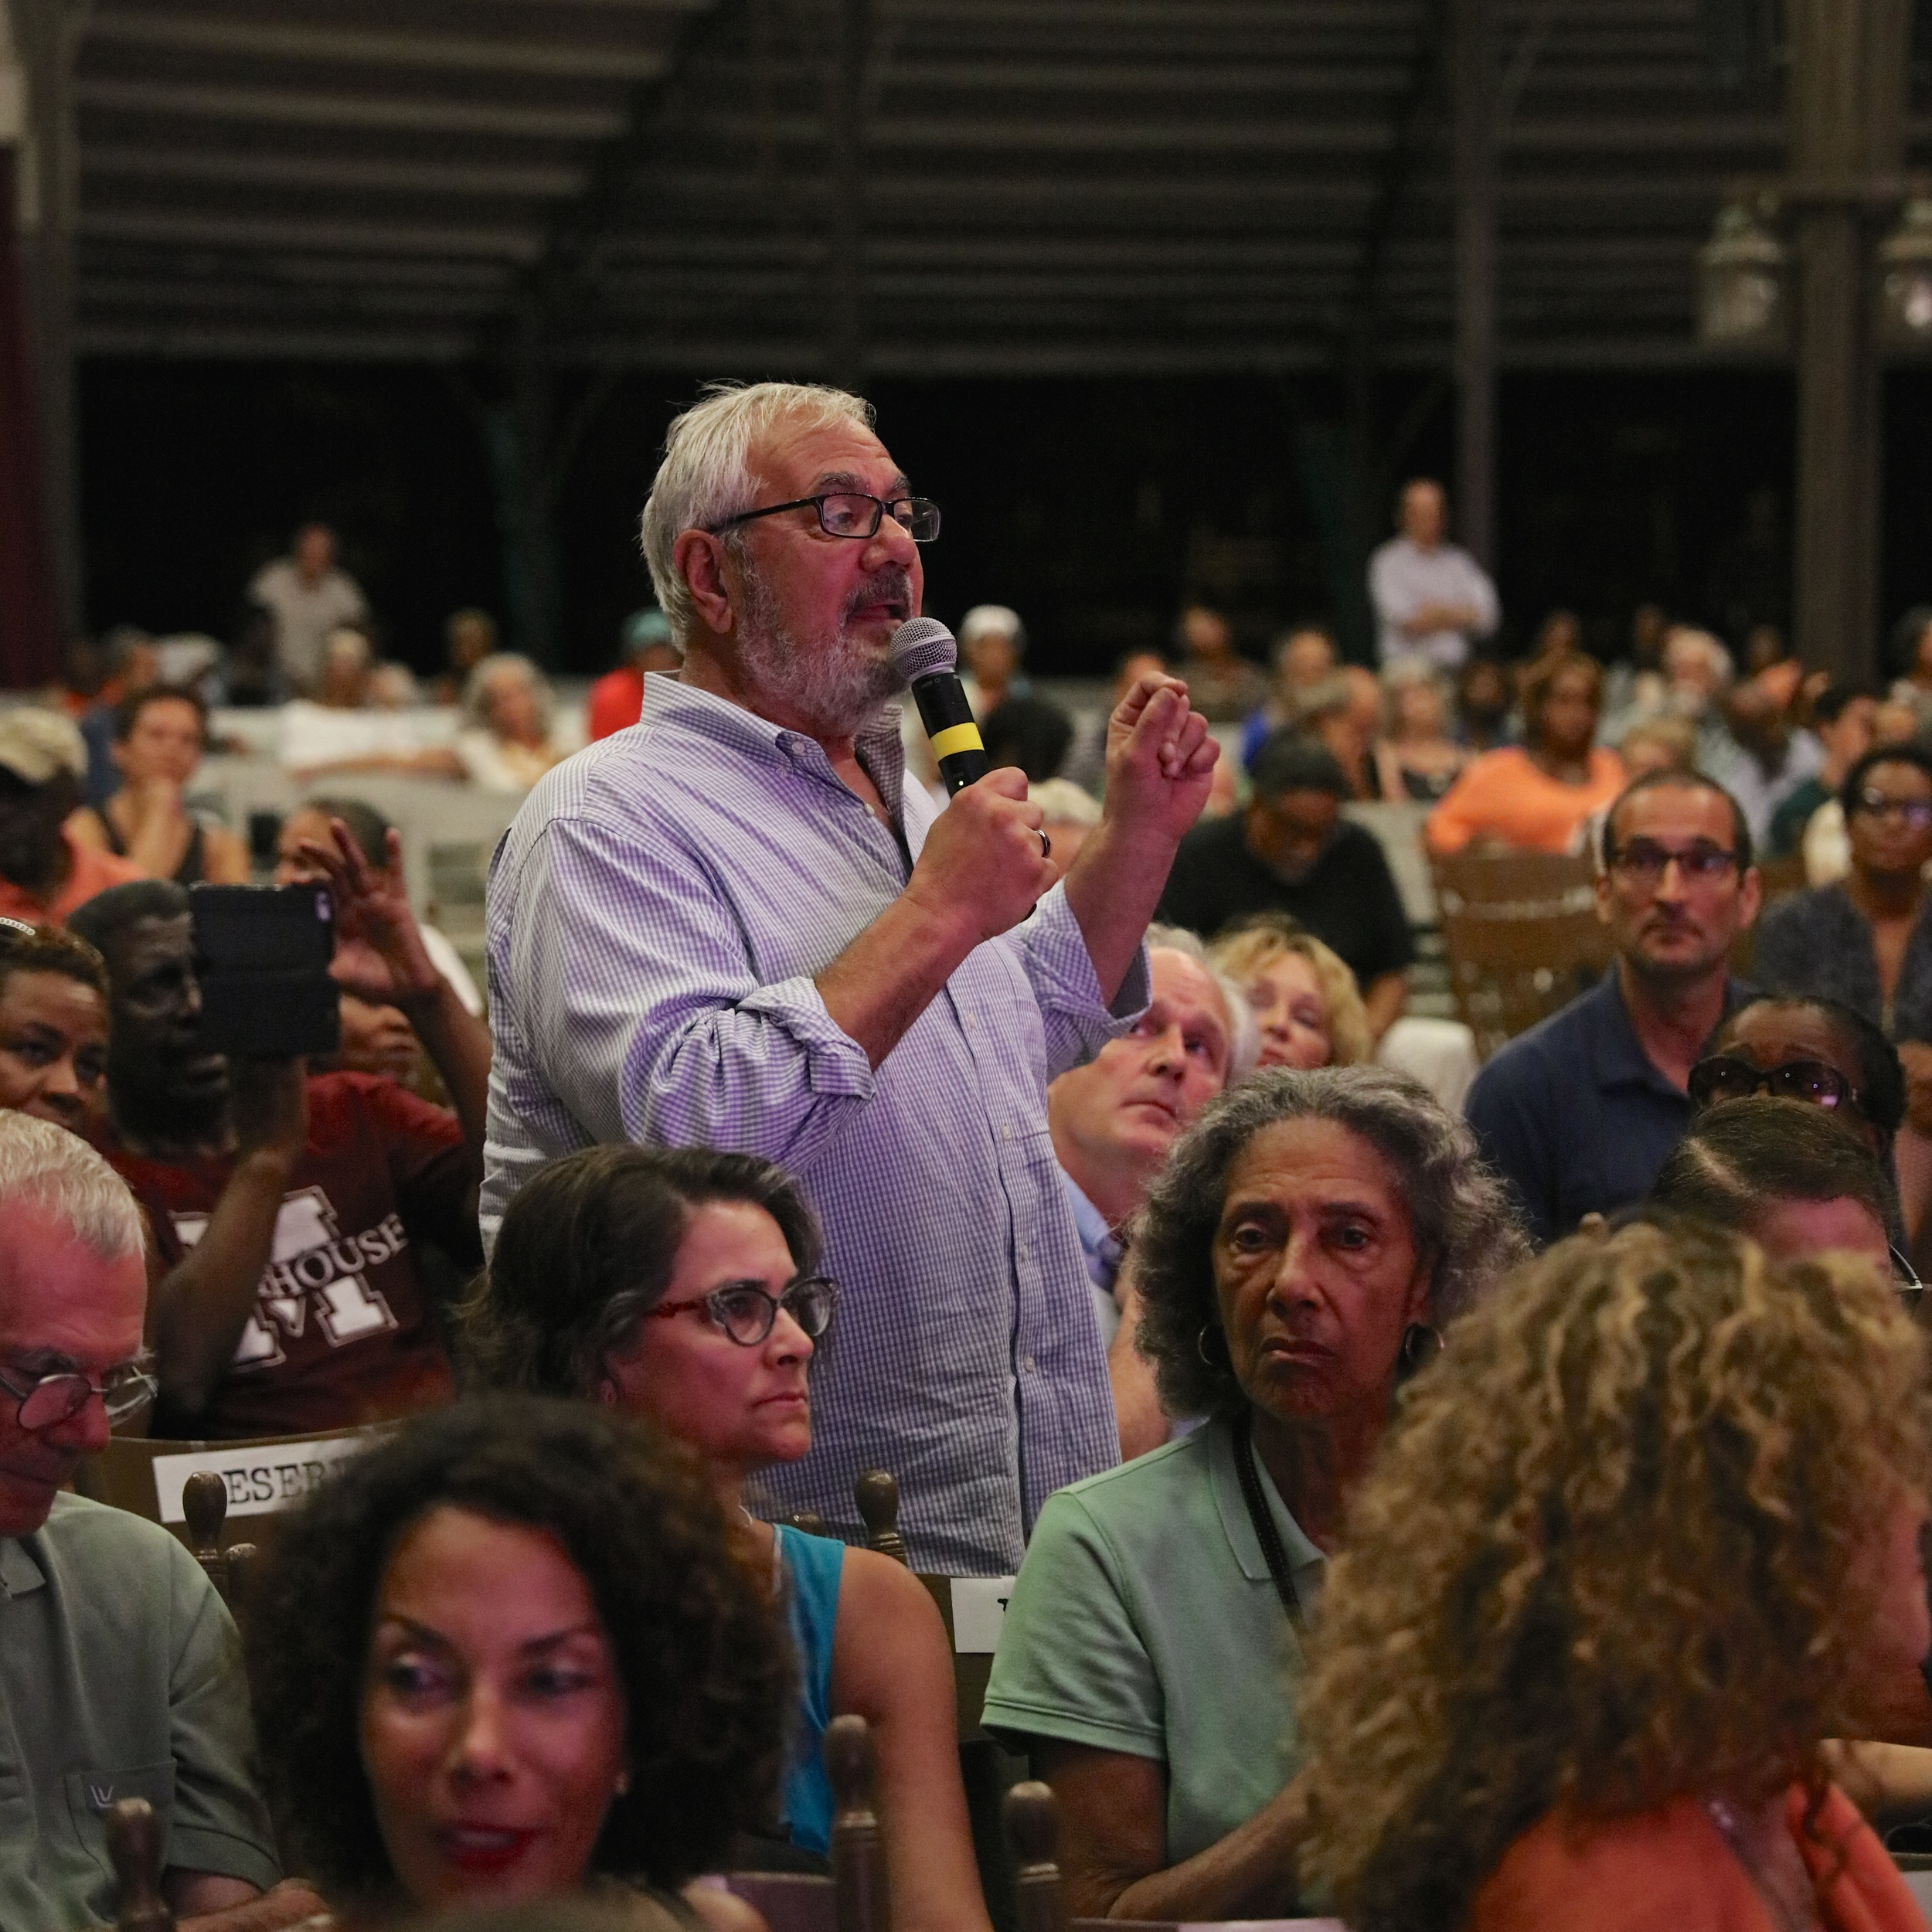 Former Congressman Barney Frank asks a question of director Stanley Nelson, former Black Panther Kathleen Cleaver, and Professor Henry Louis Gates, Jr. after the screening of THE BLACK PANTHERS: VANGUARD OF THE REVOLUTION on August 3, 2015,at the Tabernacle in Oak Bluffs. Photo by Reece Robinson.